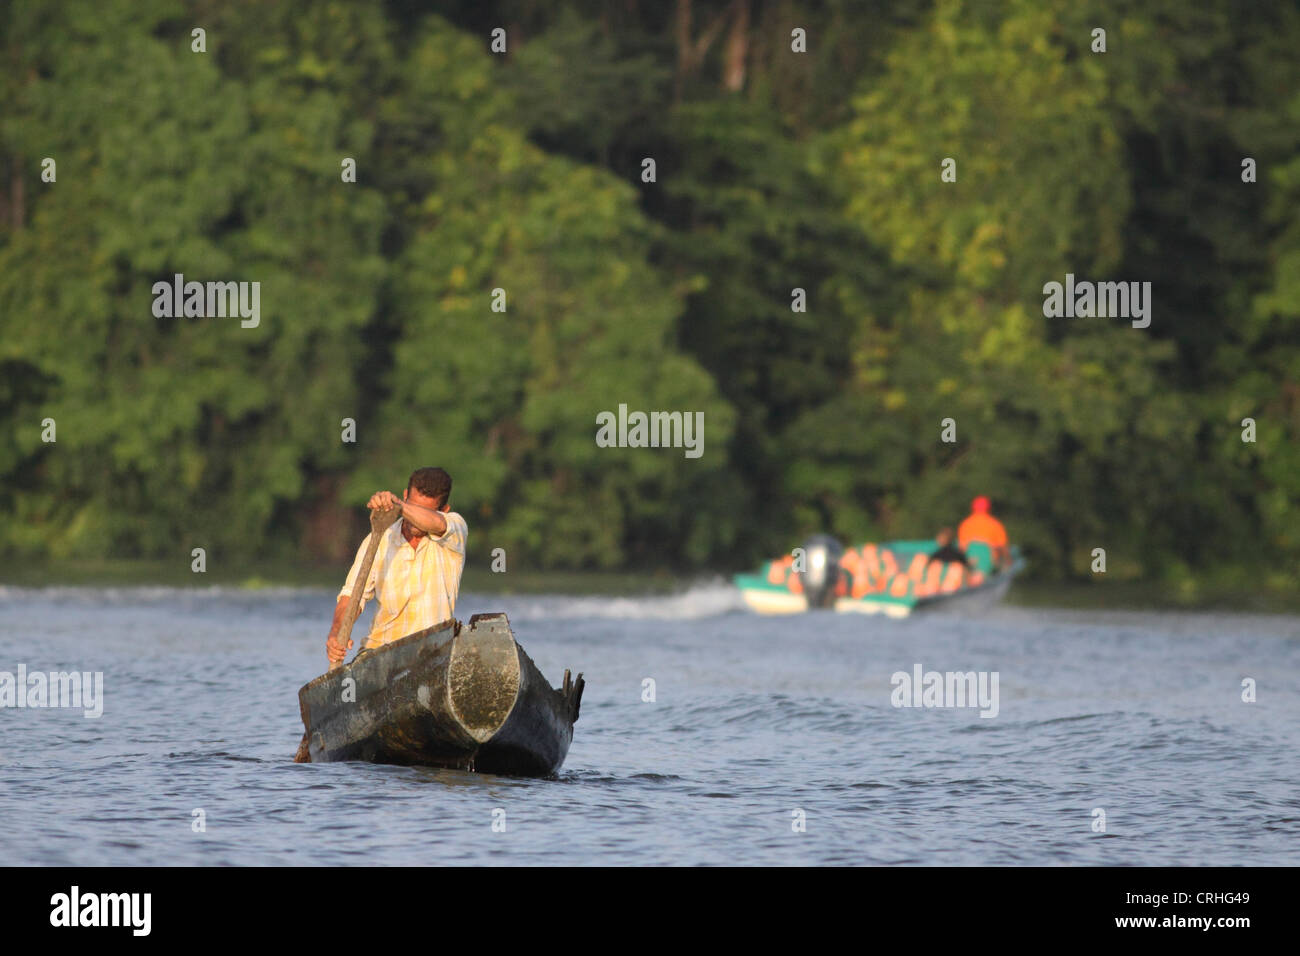 Tourist boat passes villager in canoe on natural rainforest canal. Tortuguero National Park. Costa Rica. October - Stock Image